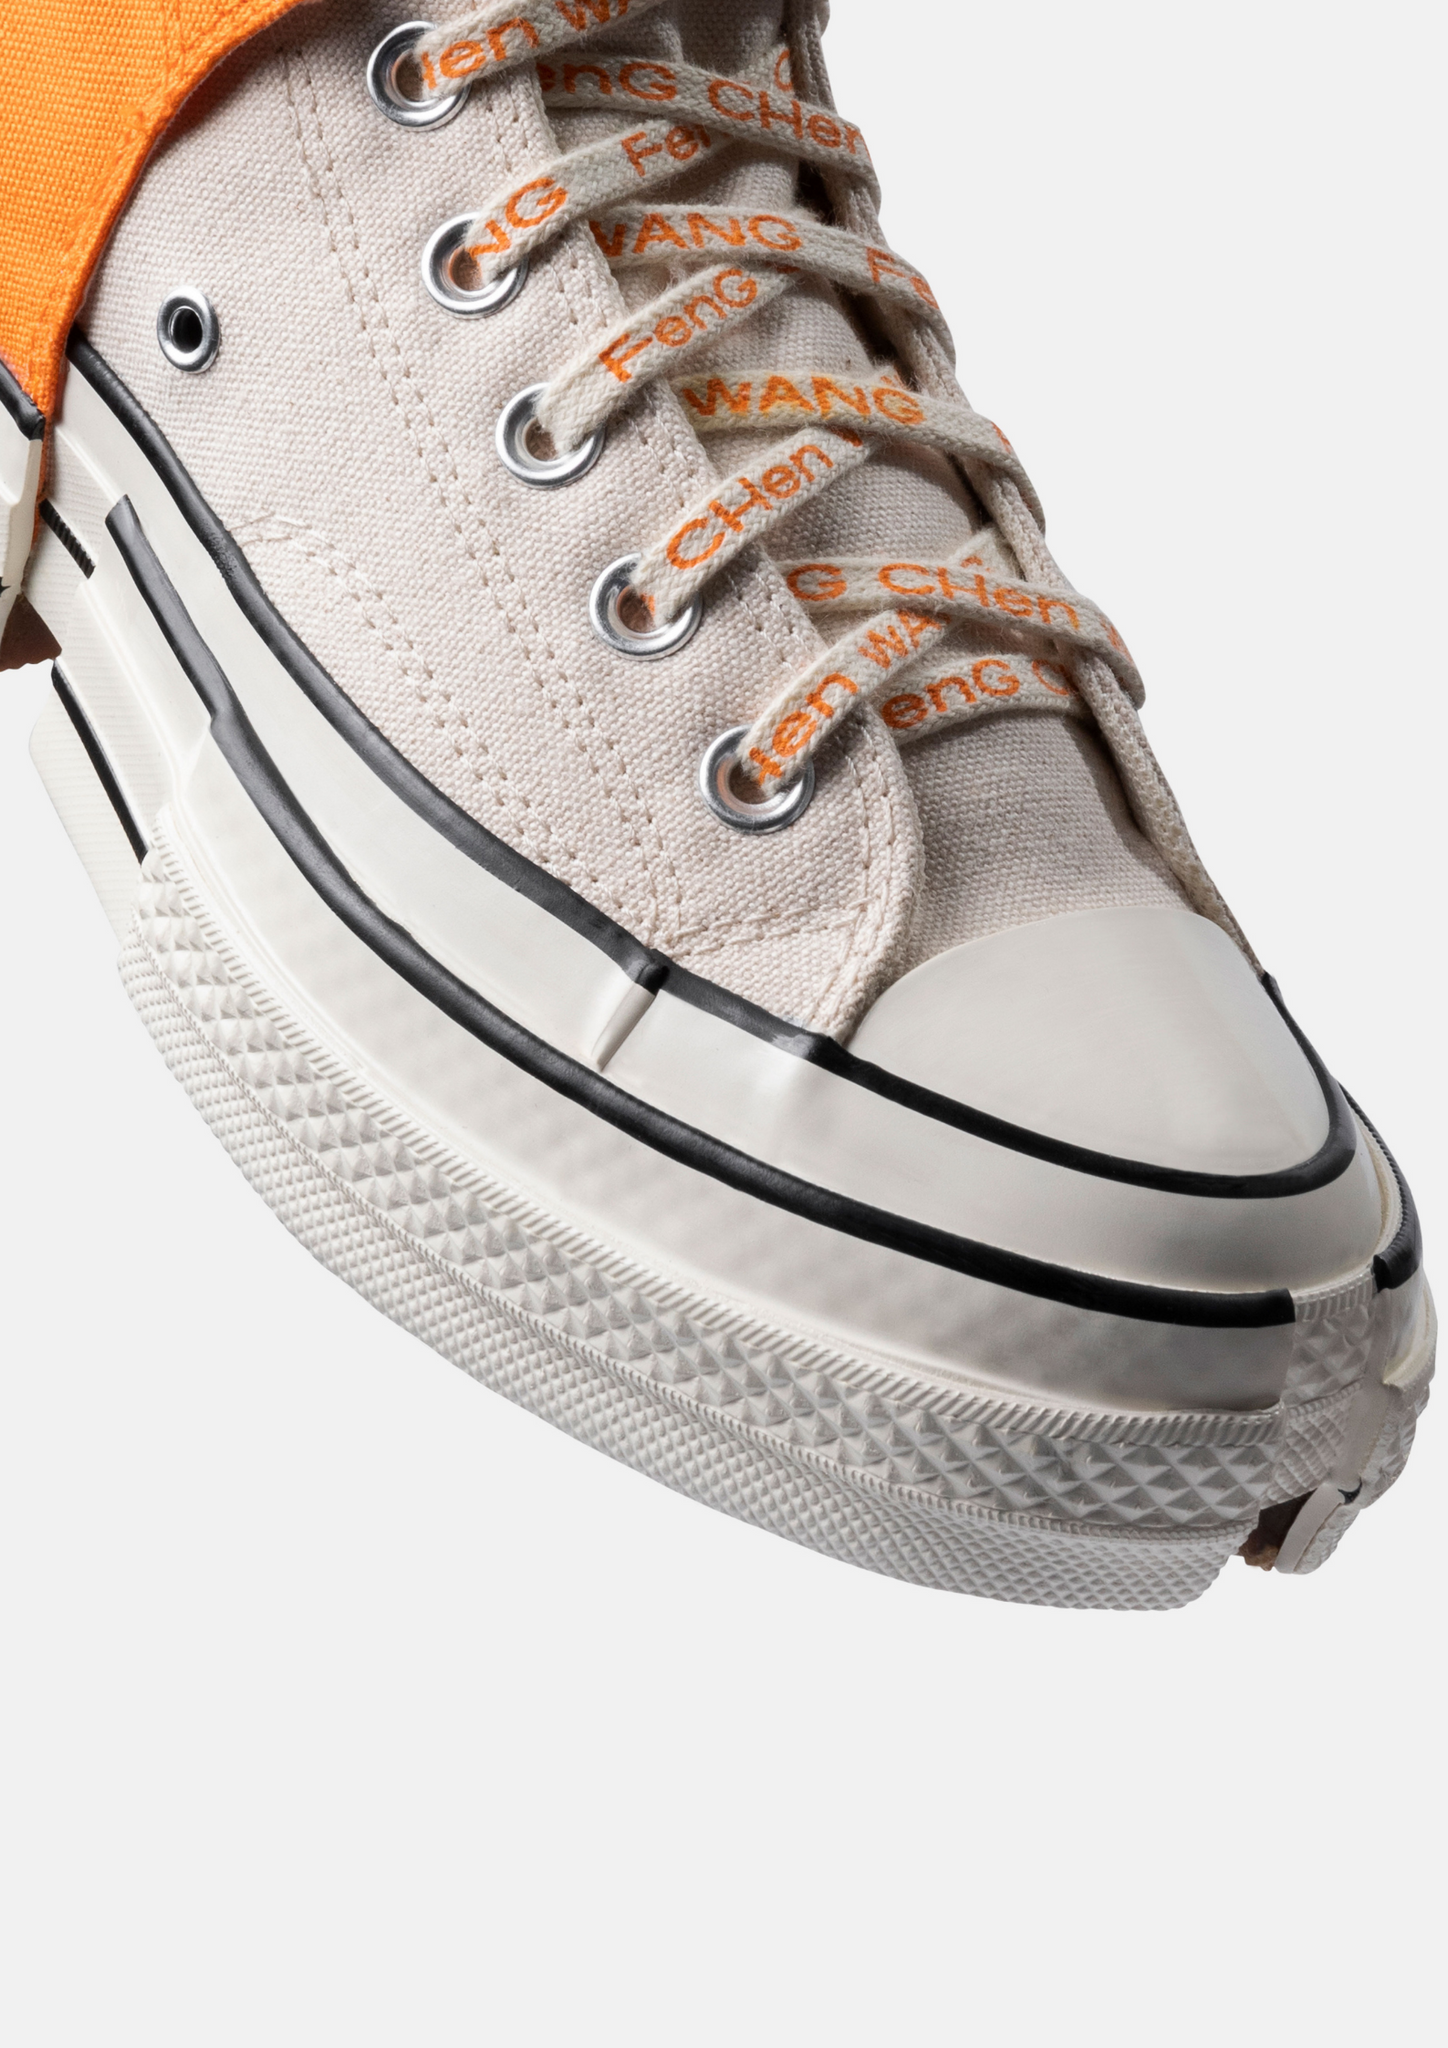 Feng Chen Wang x Converse Toe Cap (Orange)